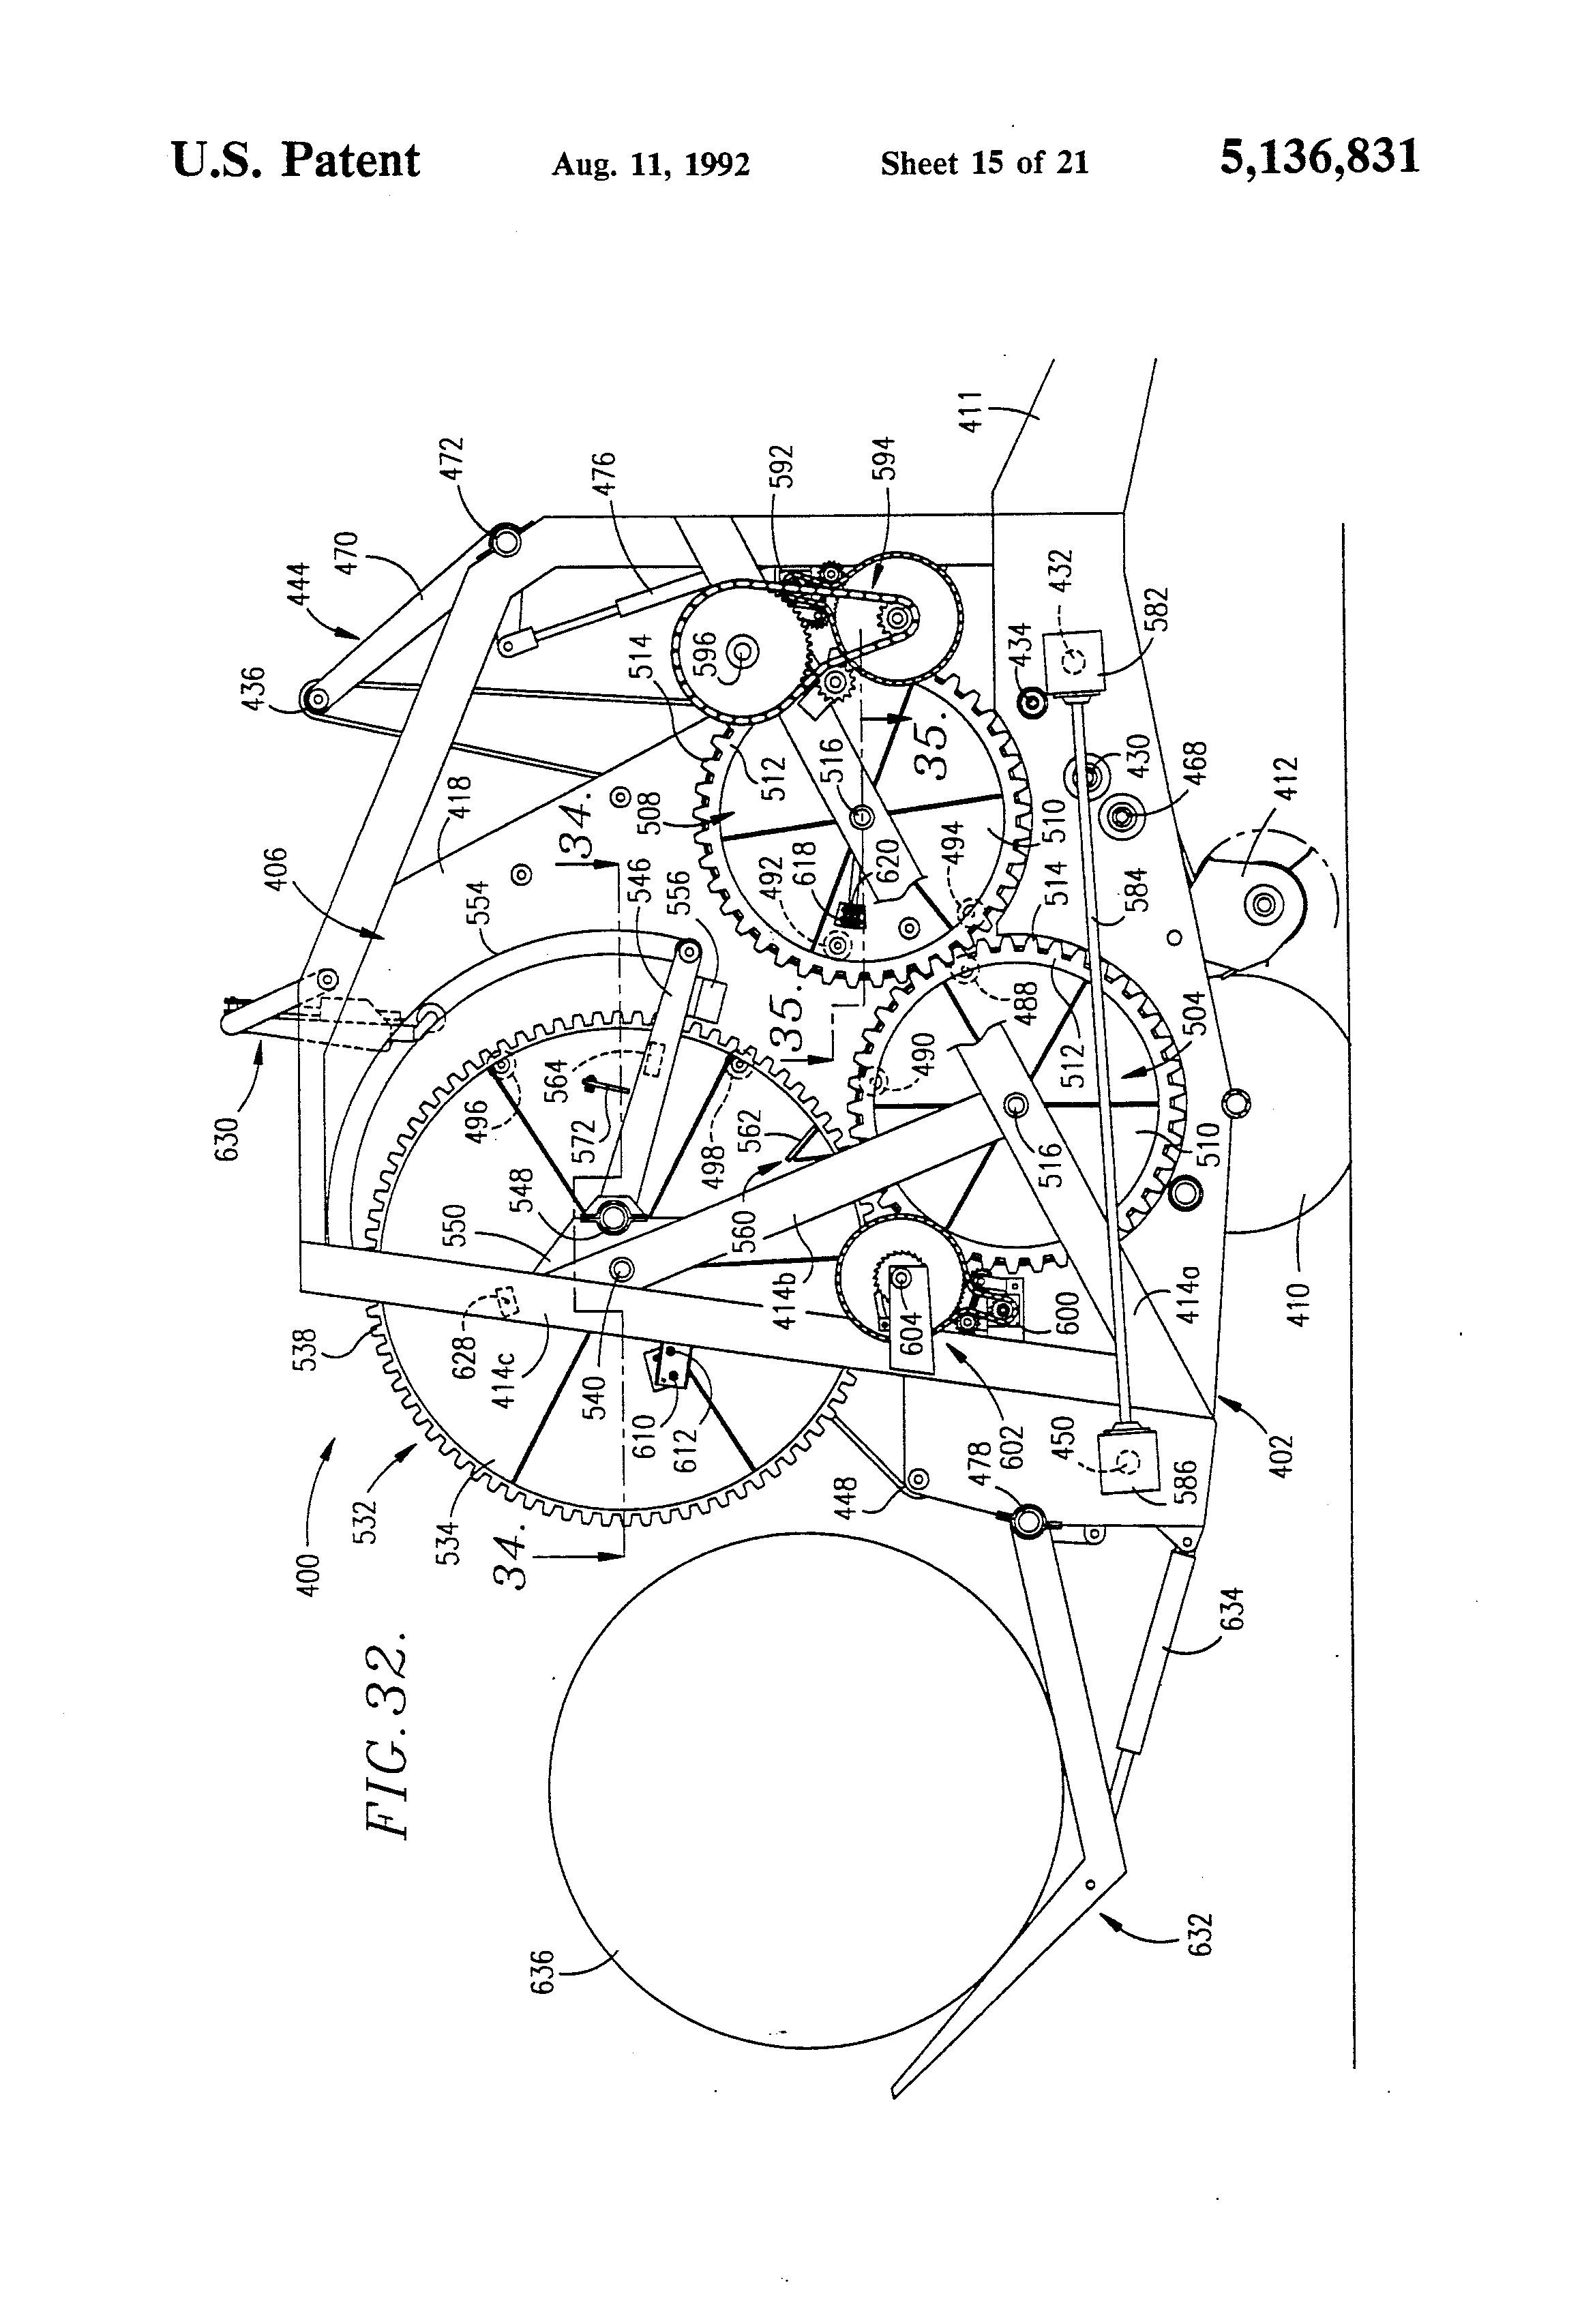 S1418274 as well 435 John Deere Wiring Diagram in addition S1416607 moreover S1417713 also S1416605. on john deere round baler parts